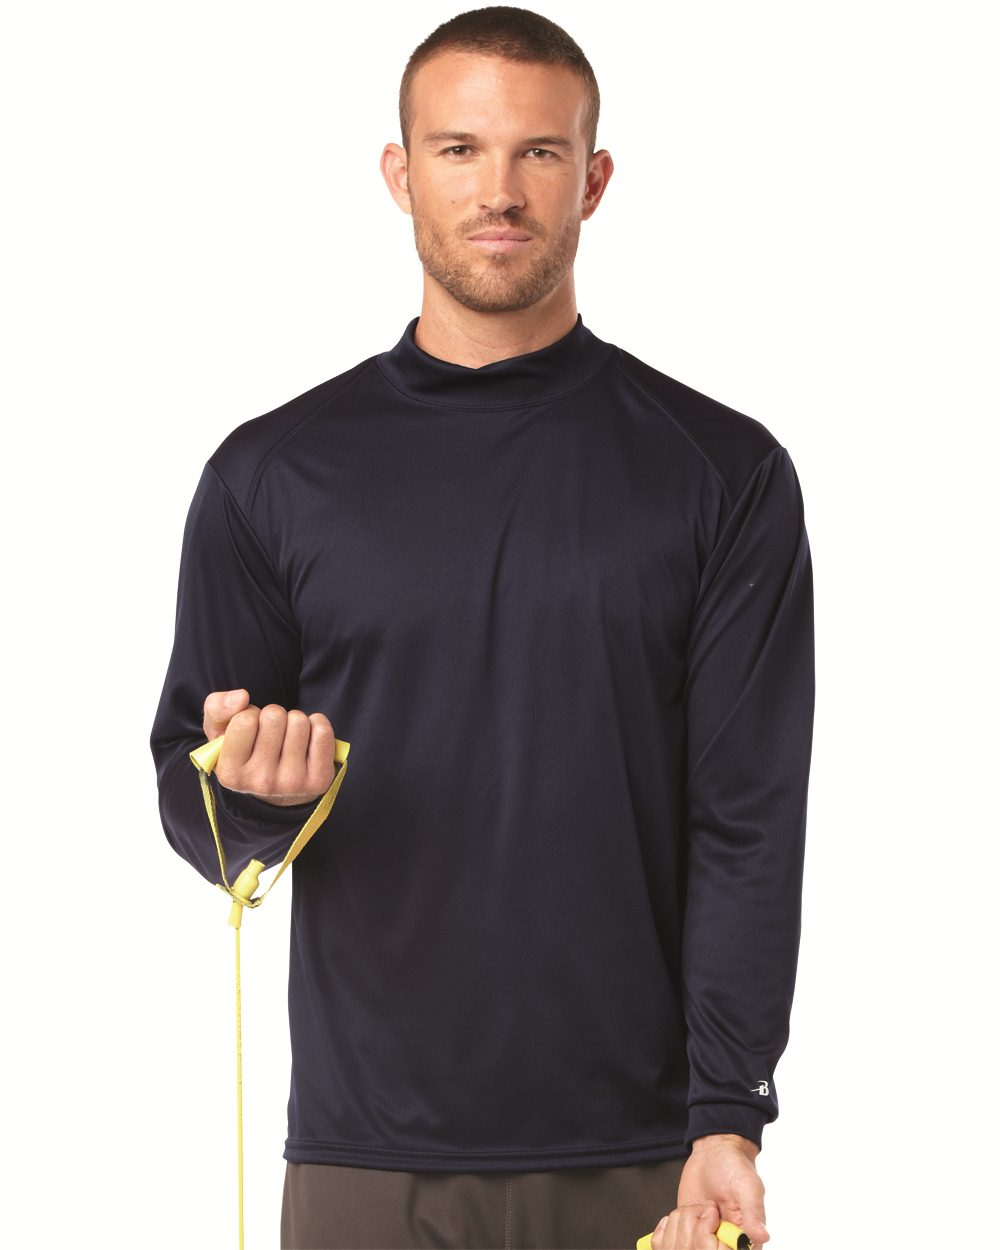 Badger Sport 4156 B-Dry Core Long Sleeve Mock Turtleneck